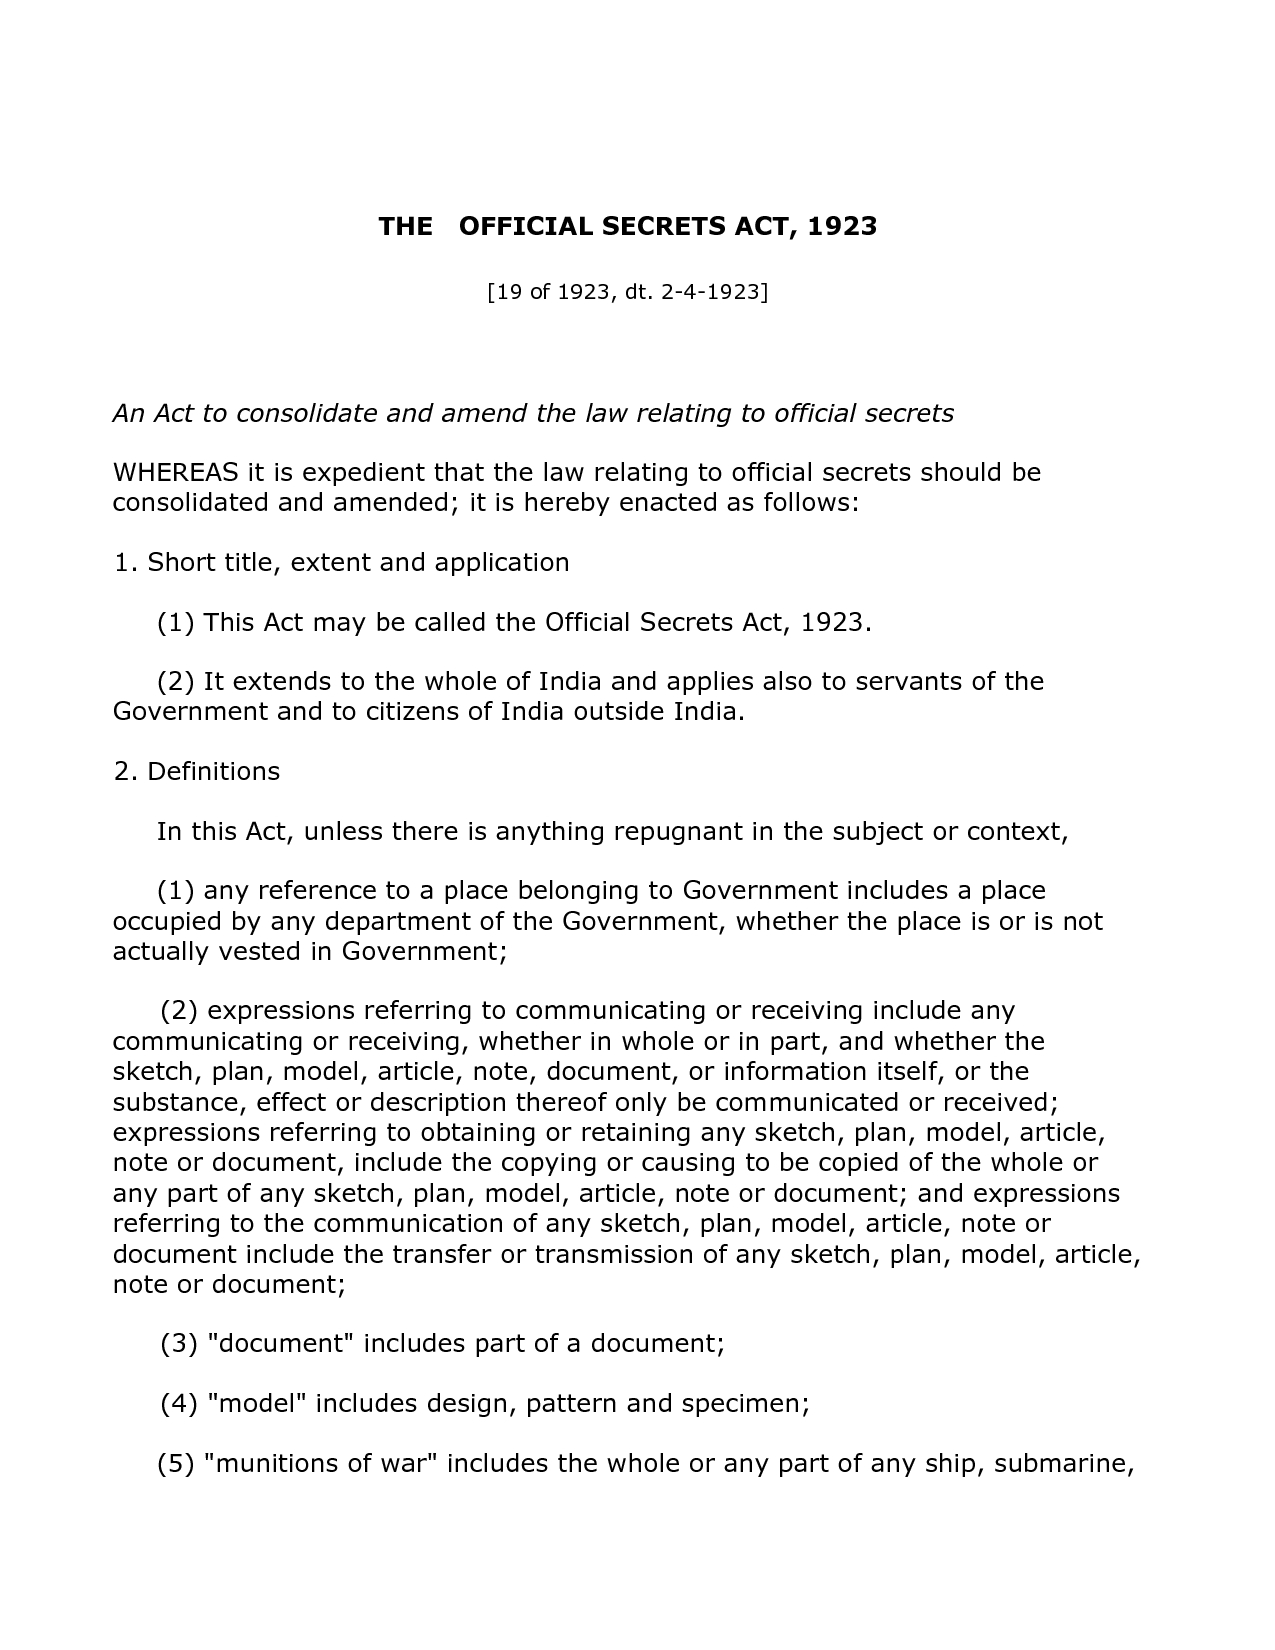 SPECIAL FRONTIER FORCE - THE OFFICIAL SECRETS ACT: THIS ACT SPECIFICALLY PROHIBITS DISCLOSURE OF ANY INFORMATION THAT IS LIKELY TO AFFECT INDIA'S FRIENDLY RELATIONS WITH FOREIGN STATES. AT THE SAME TIME, THE ACT IMPOSES A SPECIAL BURDEN TO SUSTAIN INDIA'S FRIENDLY RELATIONS.